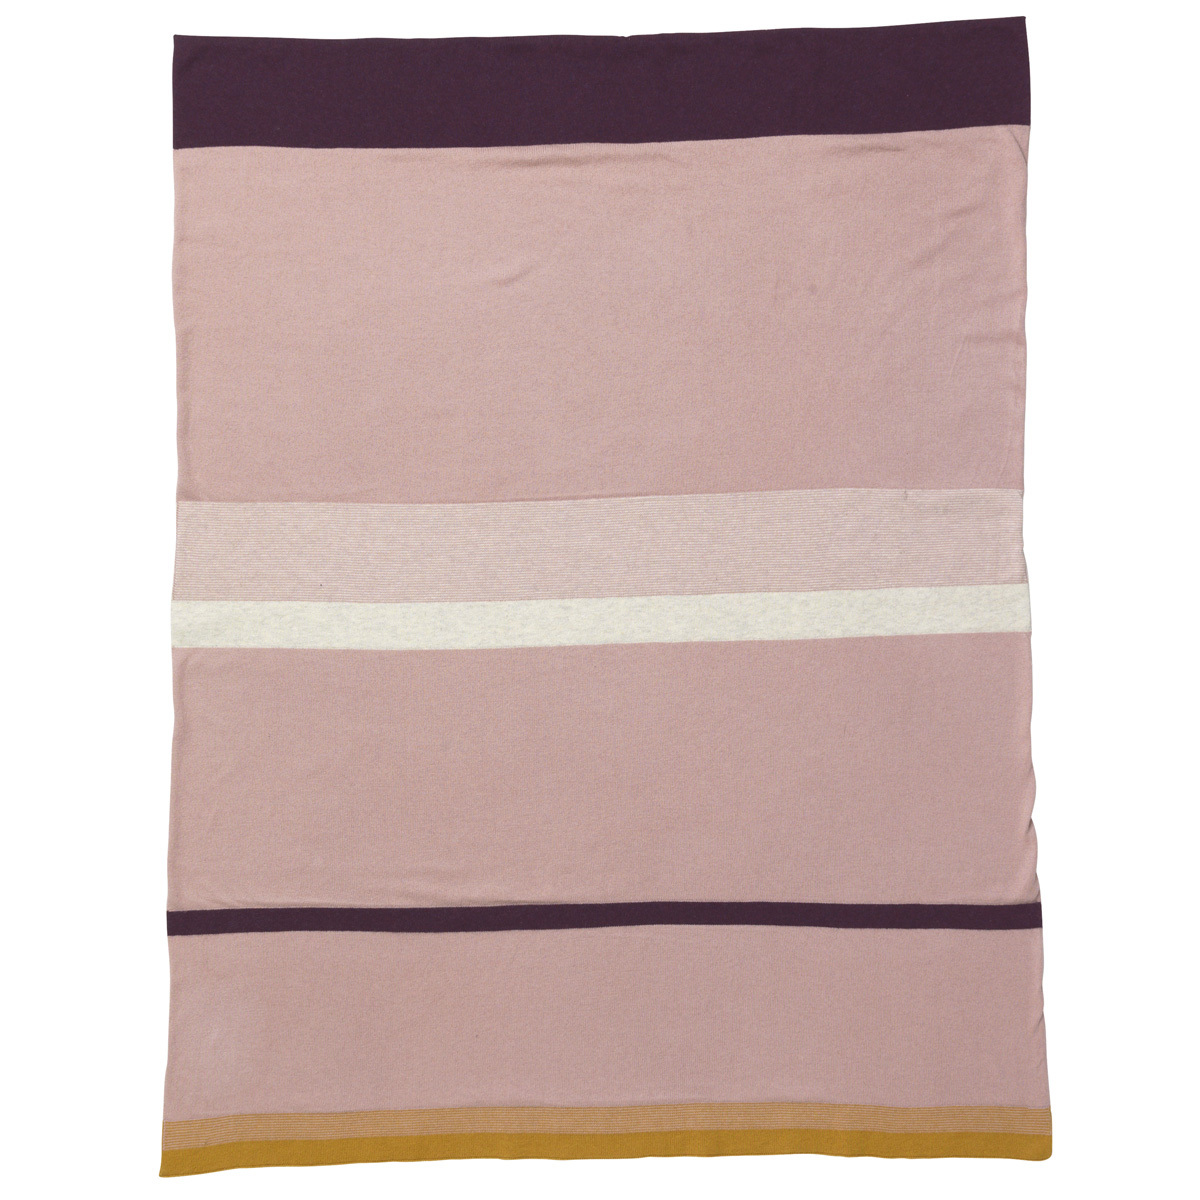 Ferm Living Couverture Little Strity Rose Linge De Lit Ferm